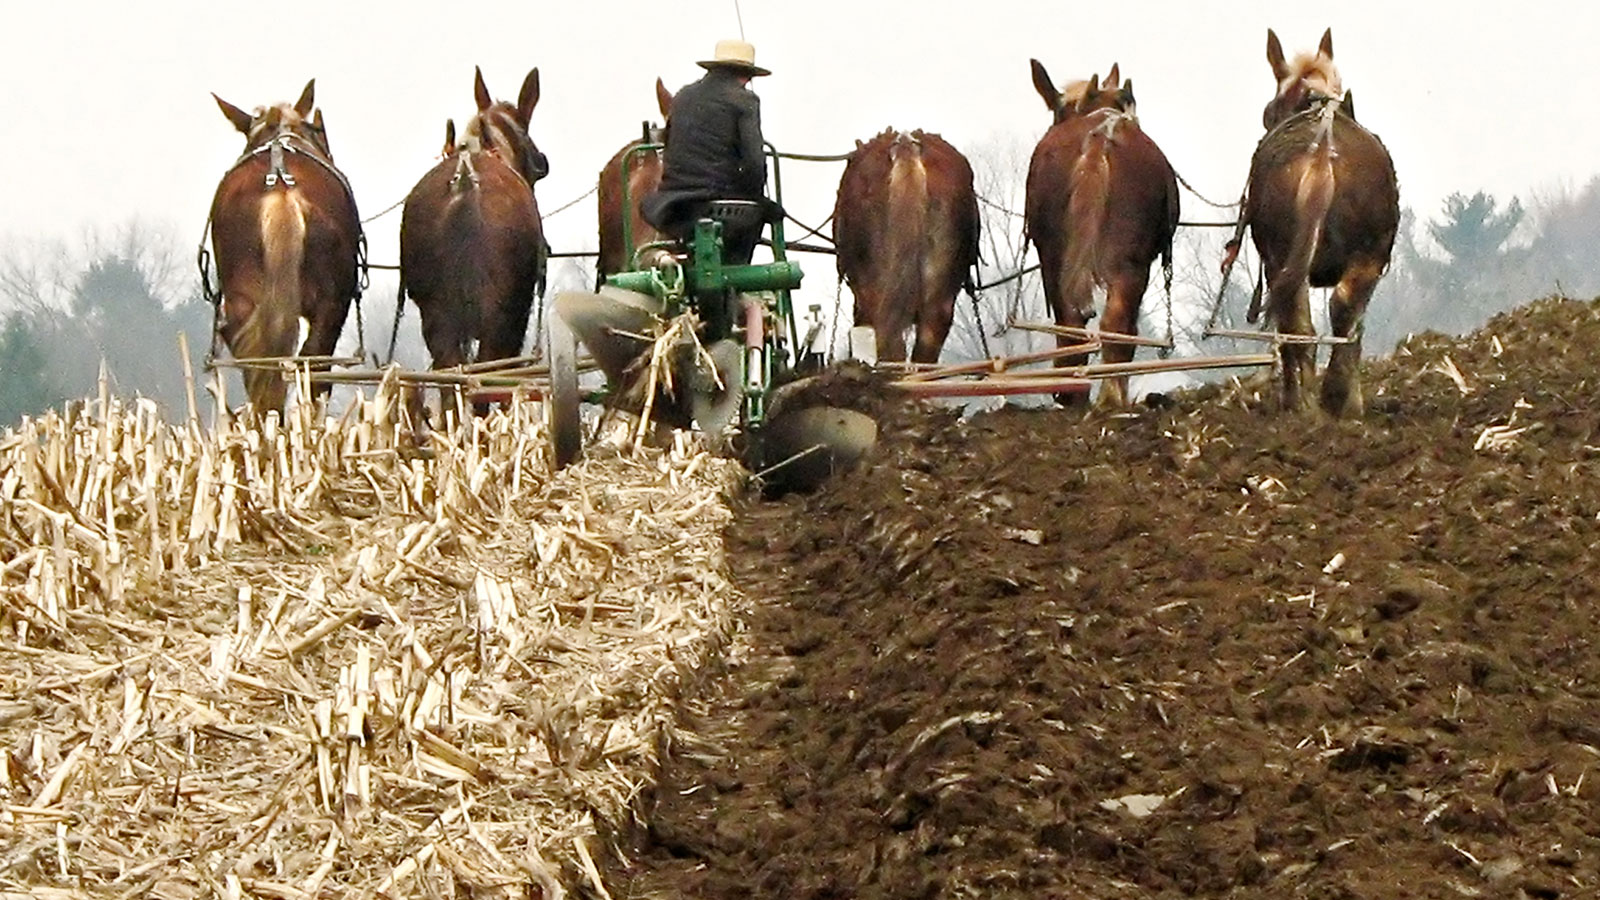 The dark side of Amish farms